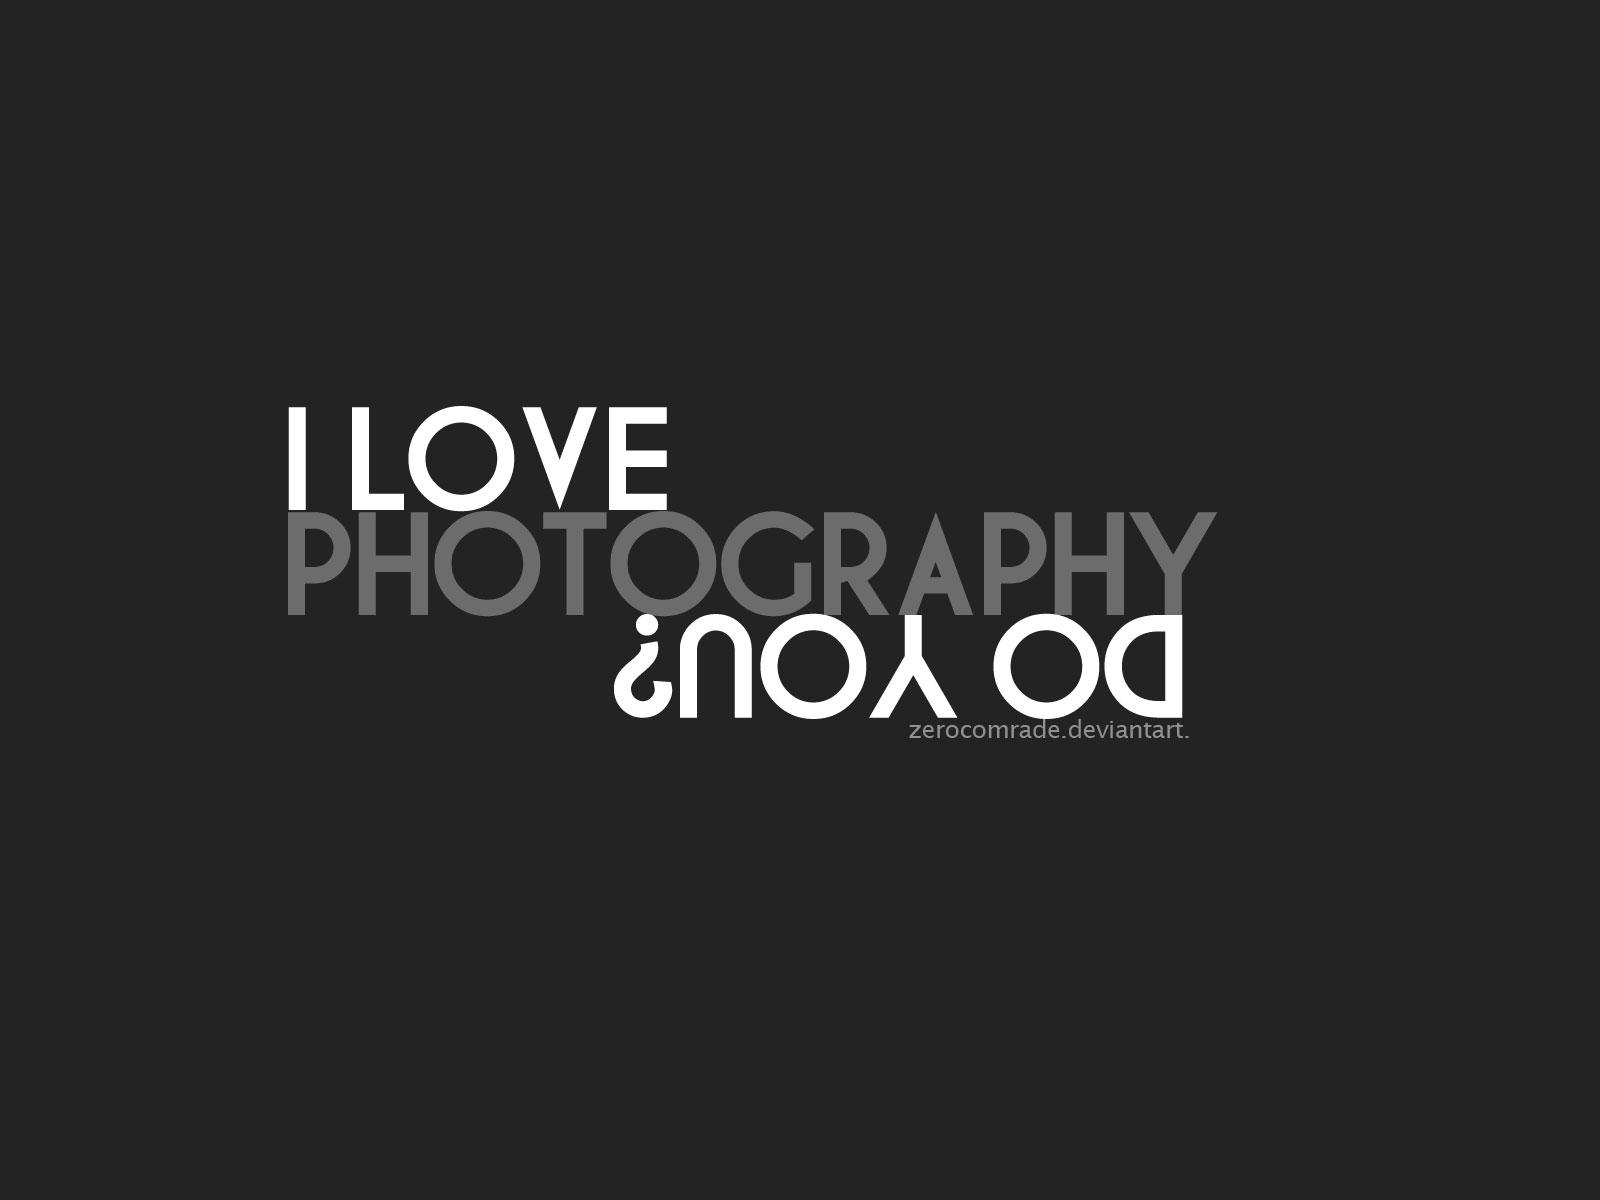 Photography Lovers Wallpaper